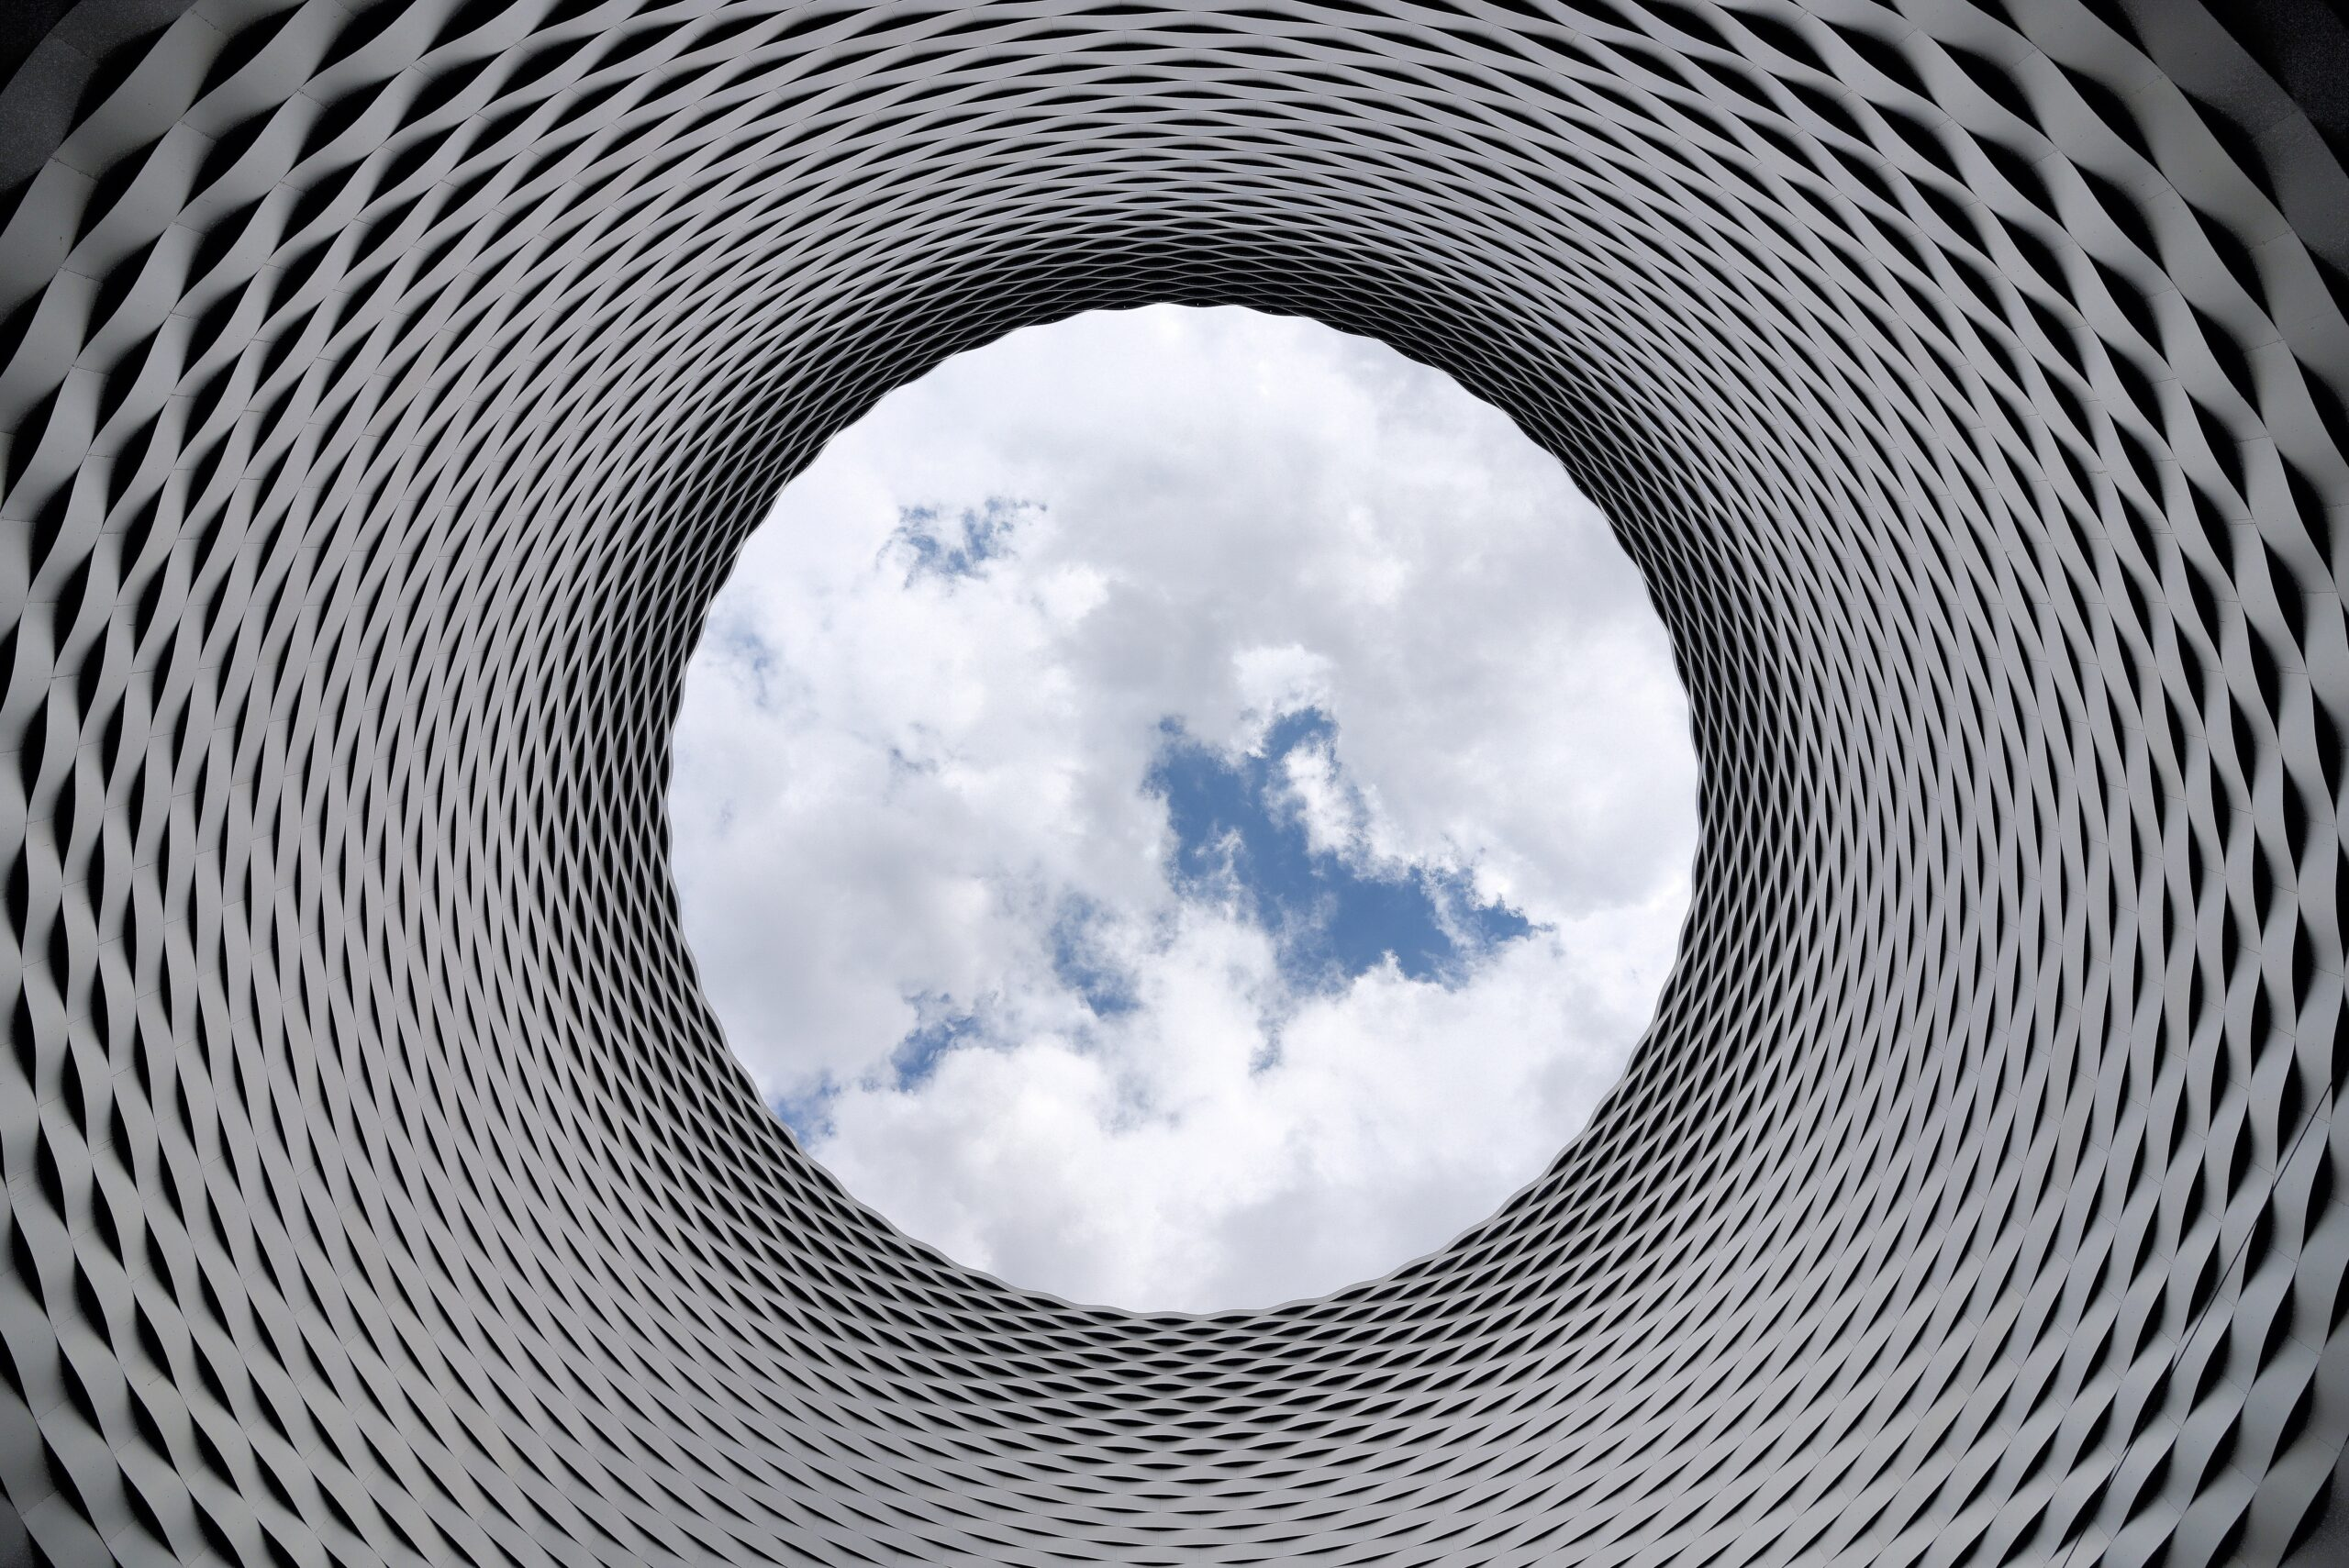 Interesting architecture with round shape, highlight opening toward sky.